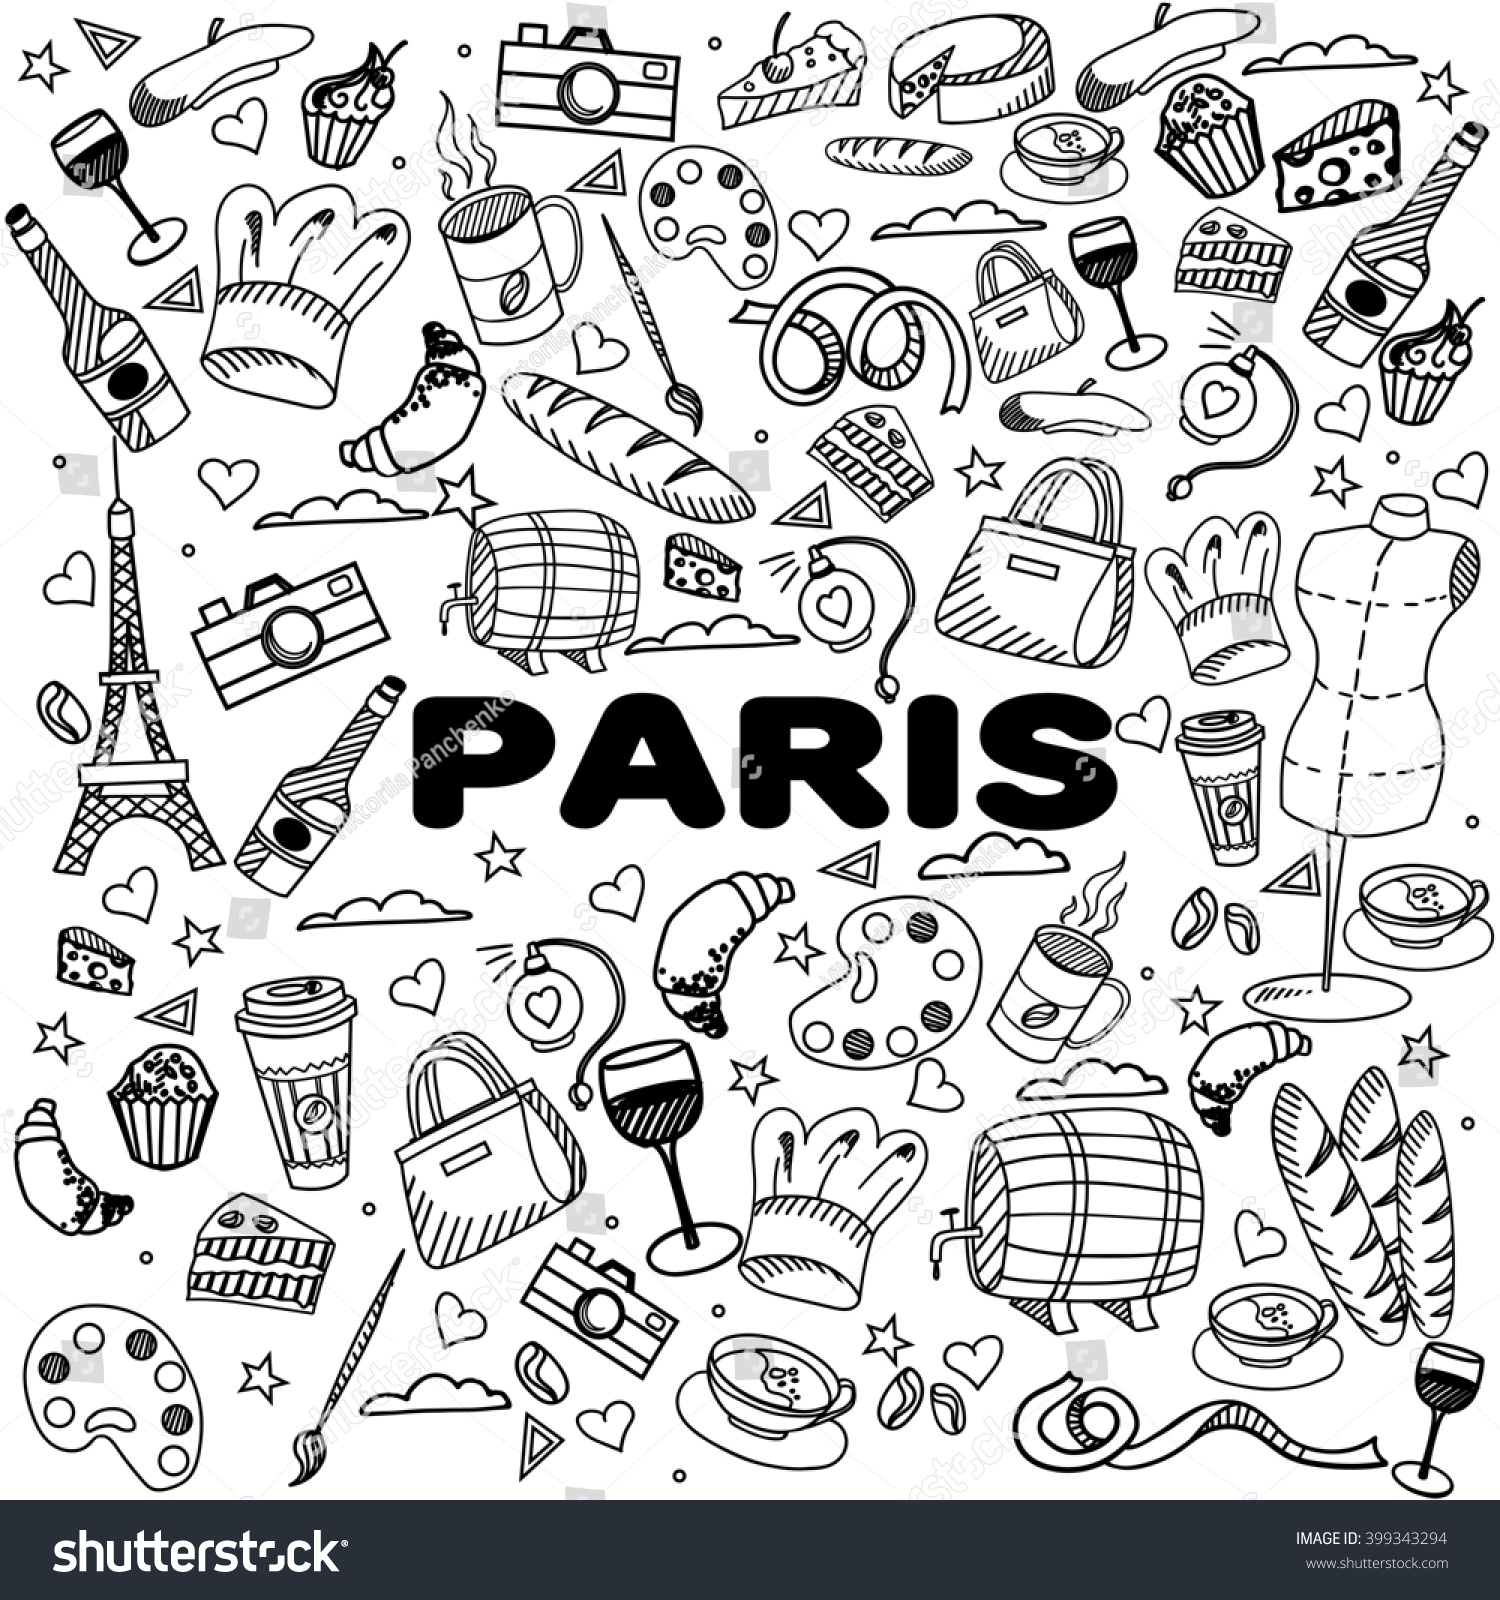 paris coloring book line art design raster illustration separate objects hand drawn doodle design - Paris Coloring Book